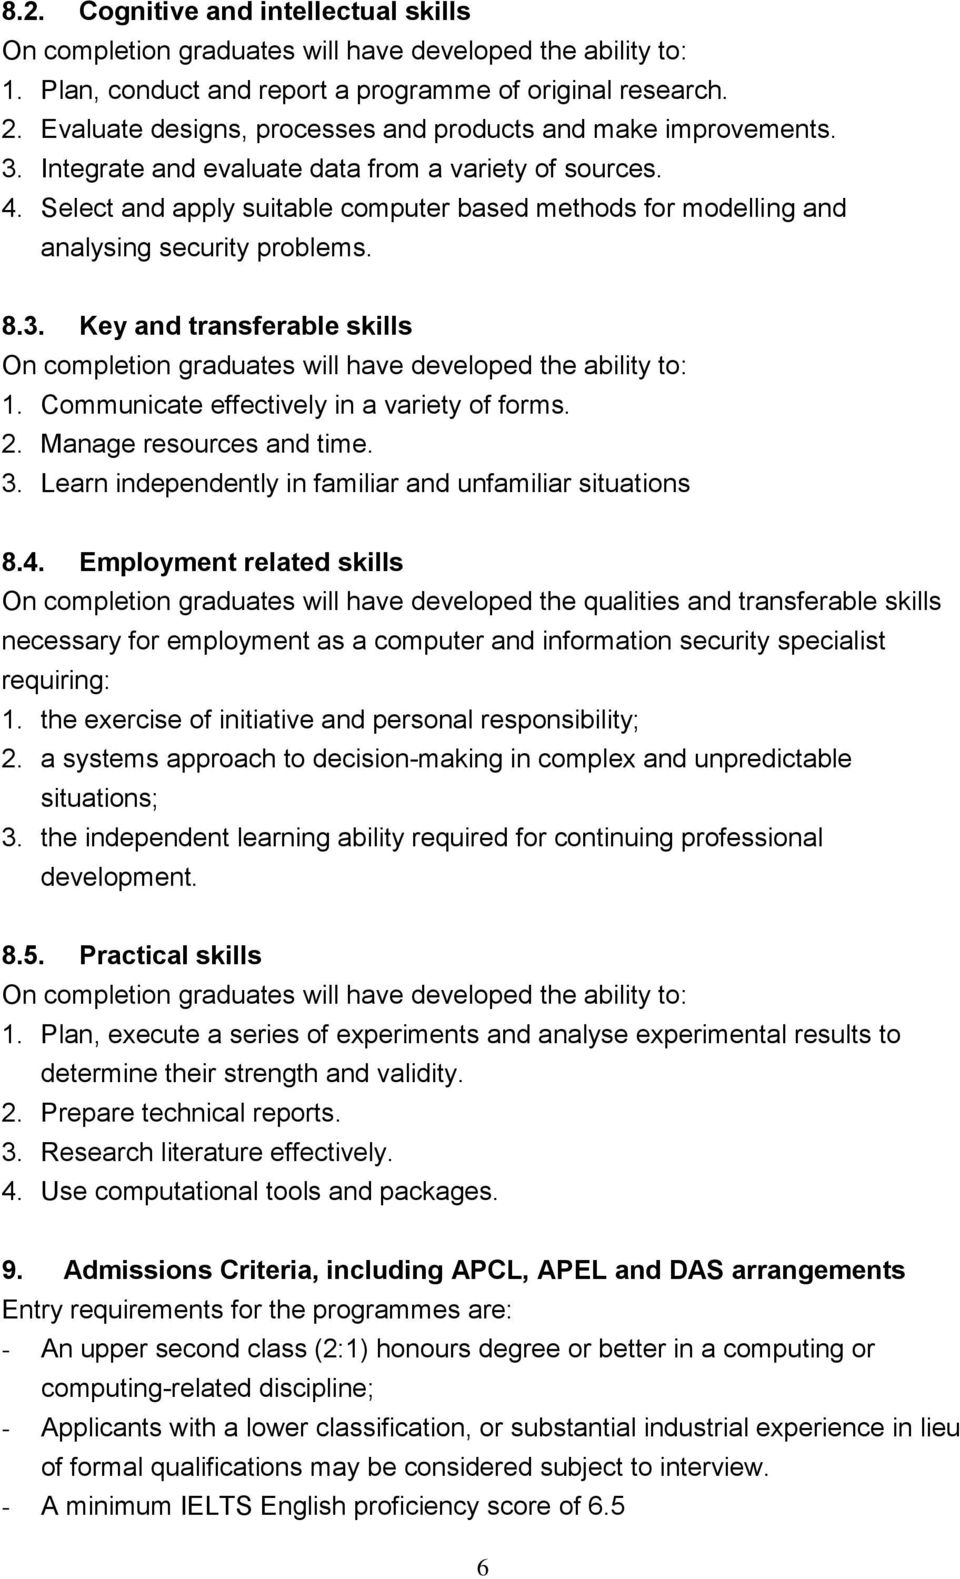 Select and apply suitable computer based methods for modelling and analysing security problems. 8.3. Key and transferable skills On completion graduates will have developed the ability to: 1.